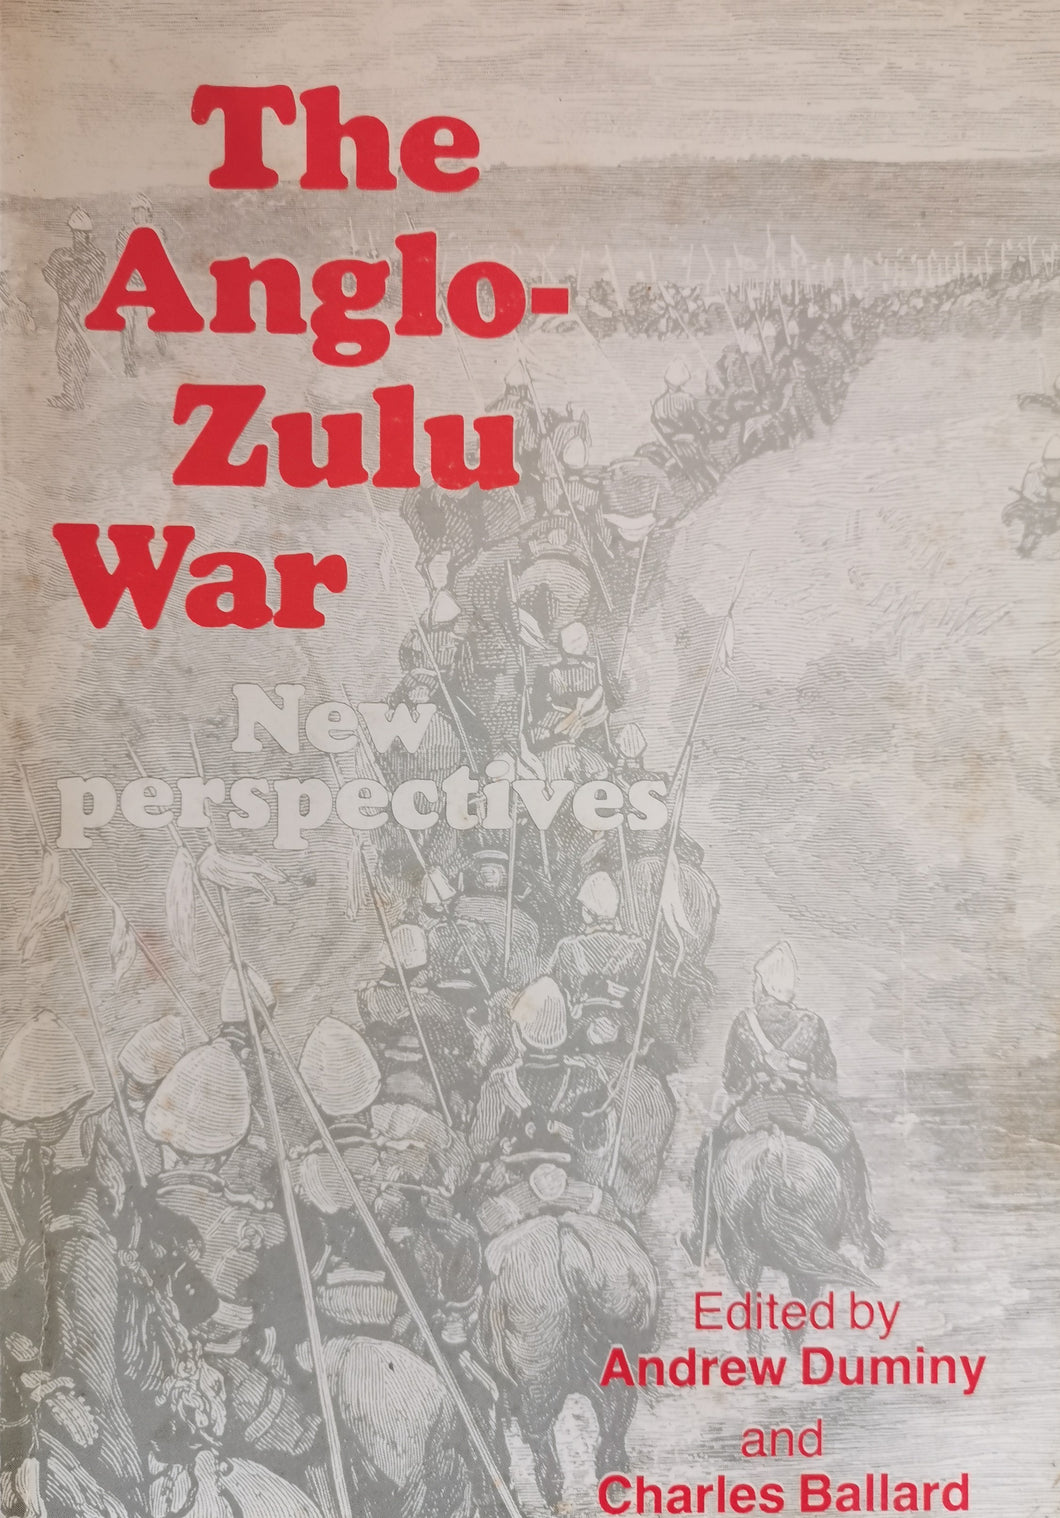 The Anglo-Zulu War: New Perspectives by A. Duminy and C. Ballard